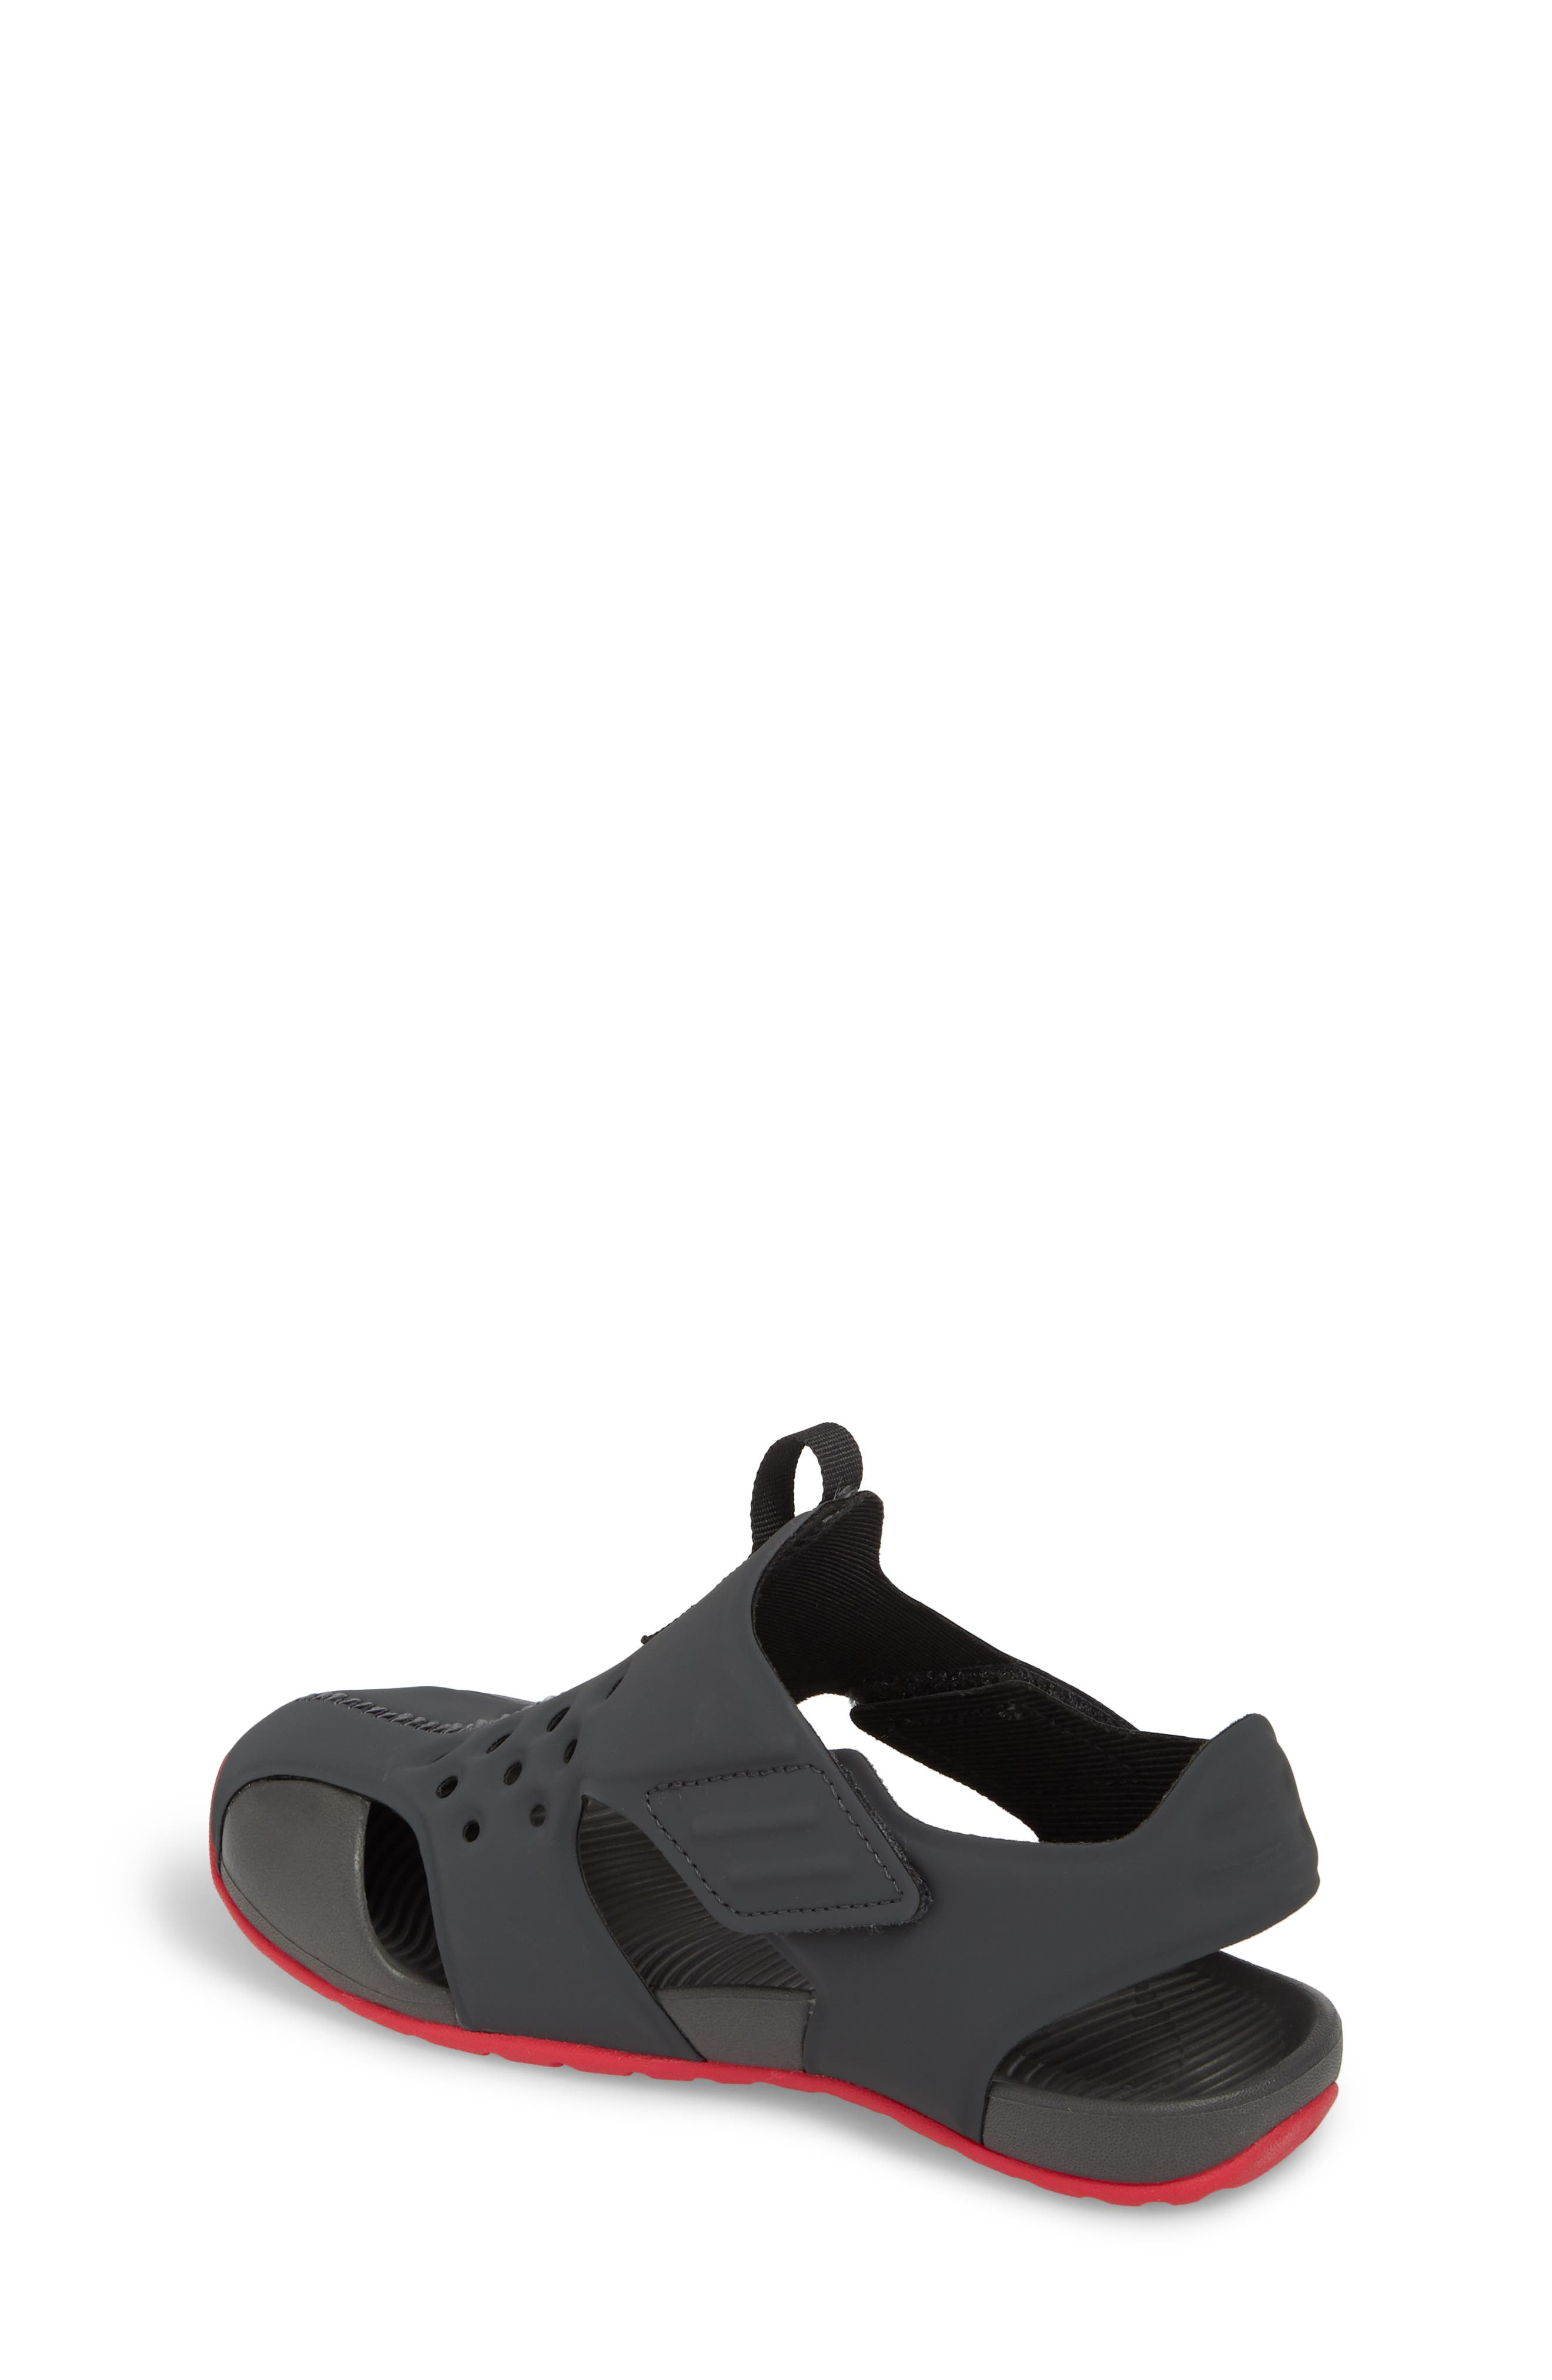 Sunray Protect 2 Sandal,                             Alternate thumbnail 2, color,                             Anthracite/ Rush Pink